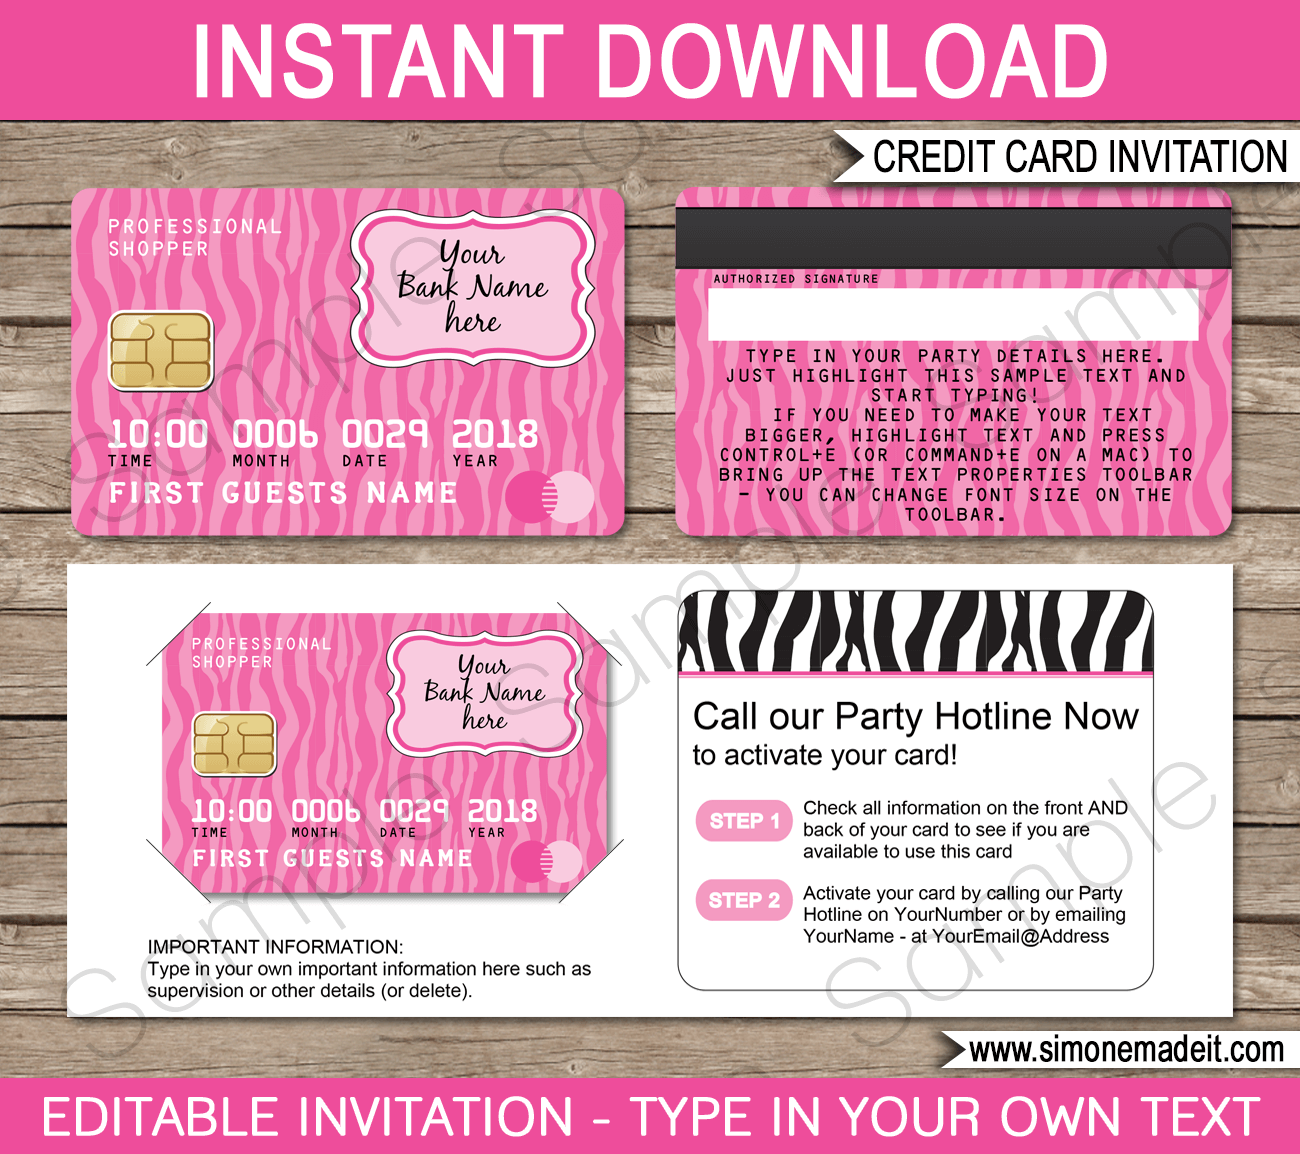 Mall Scavenger Hunt Invitations Template Pink Zebra Party Invite Template Invitation Template Invitation Cards